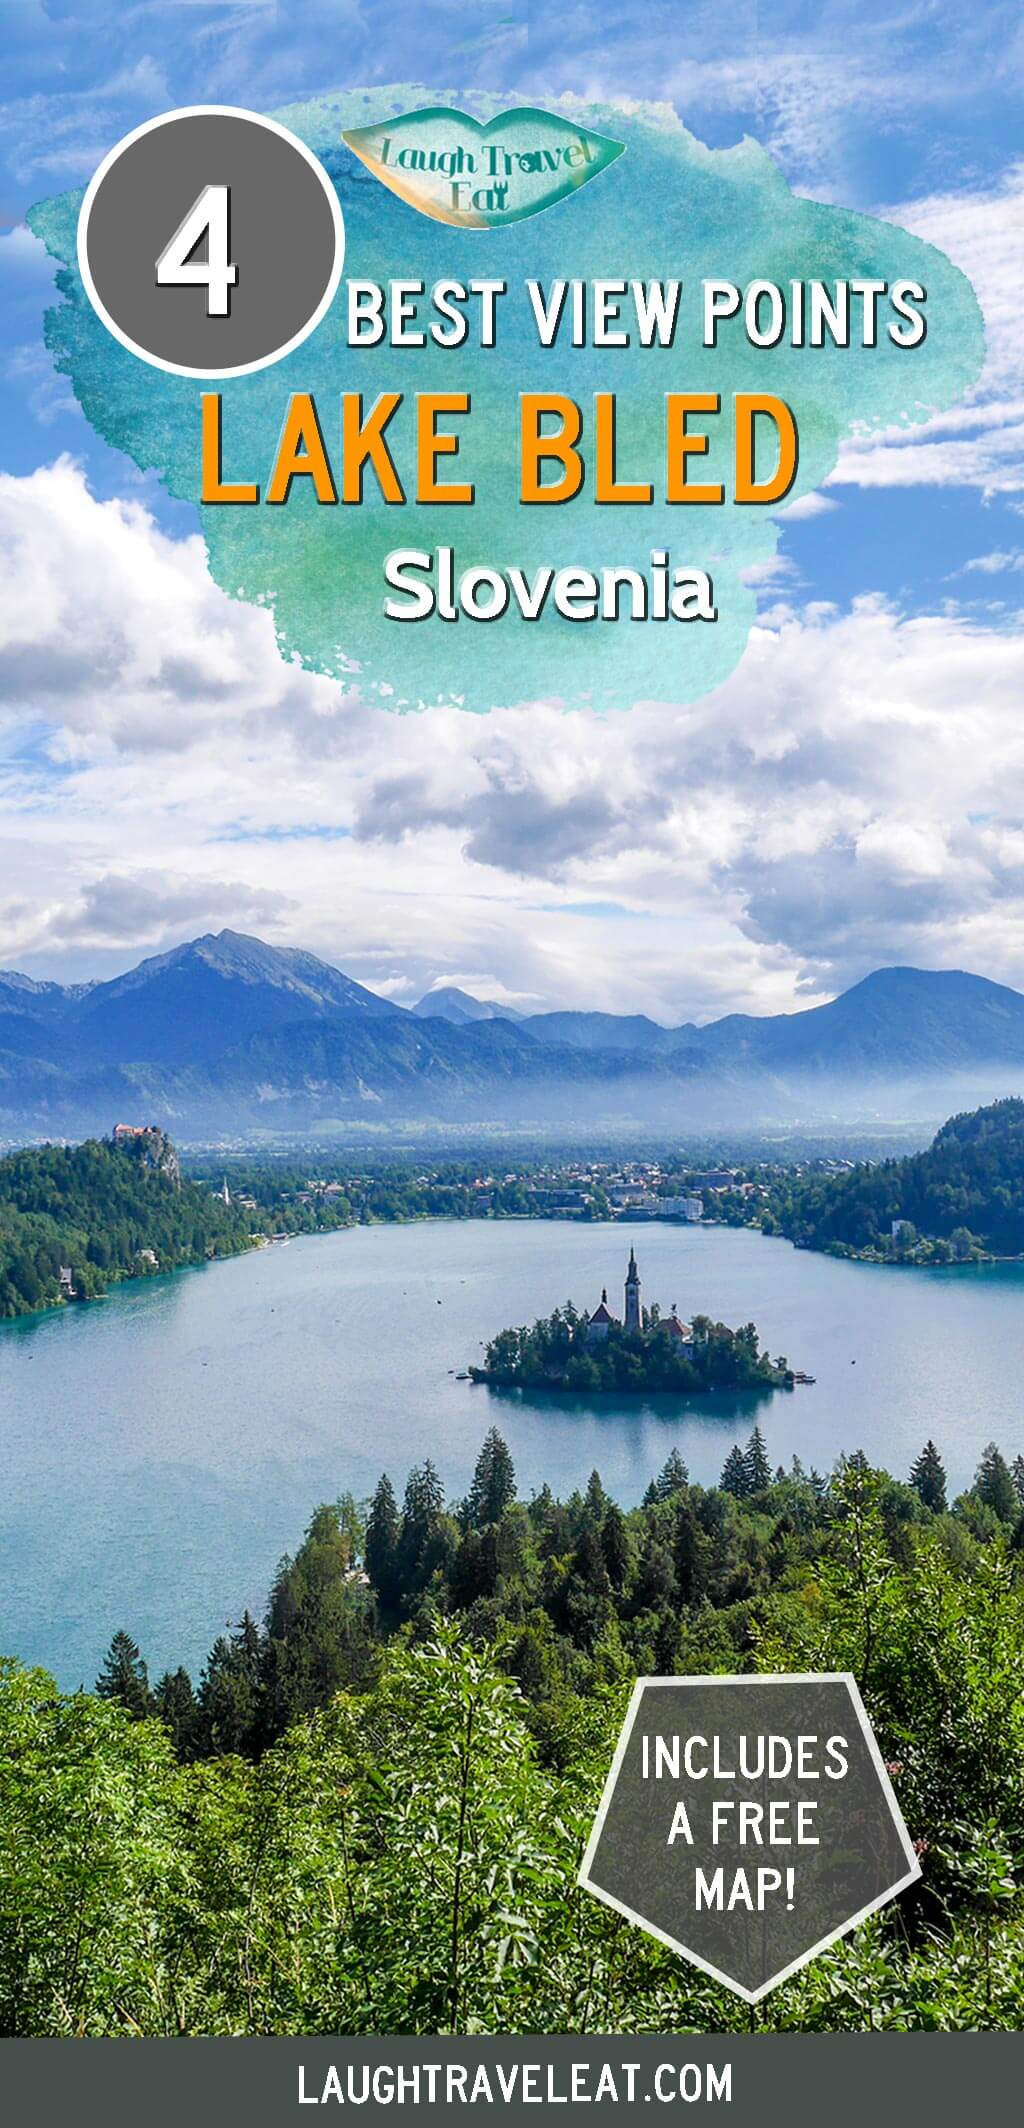 4 best viewpoints of Lake bled Slovenia | Laugh Travel Eat